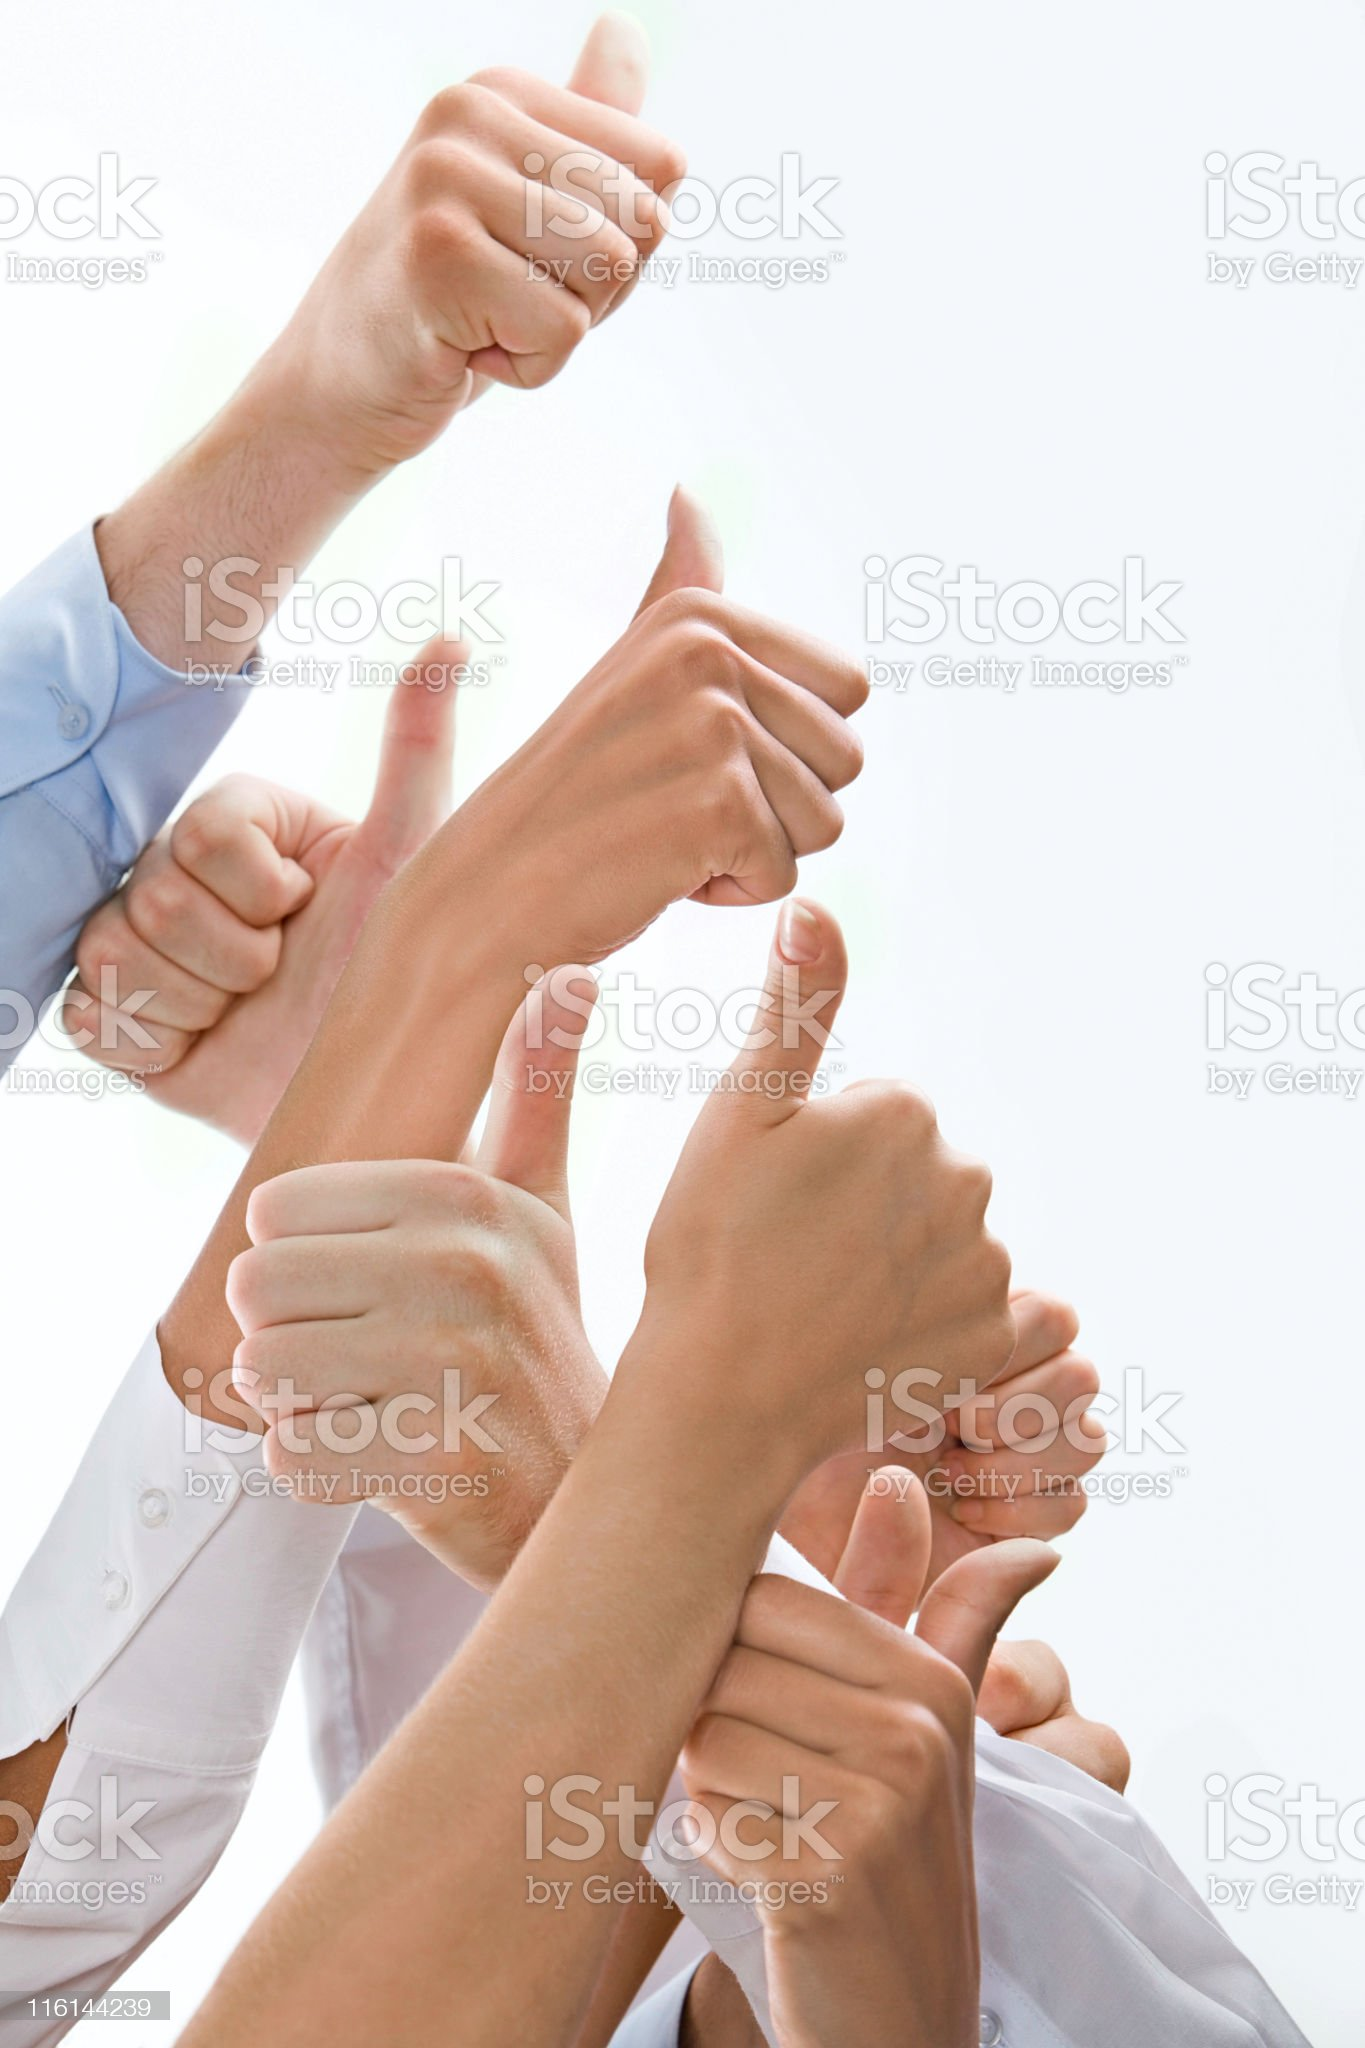 Several people giving the sign of okay with their thumbs up royalty-free stock photo